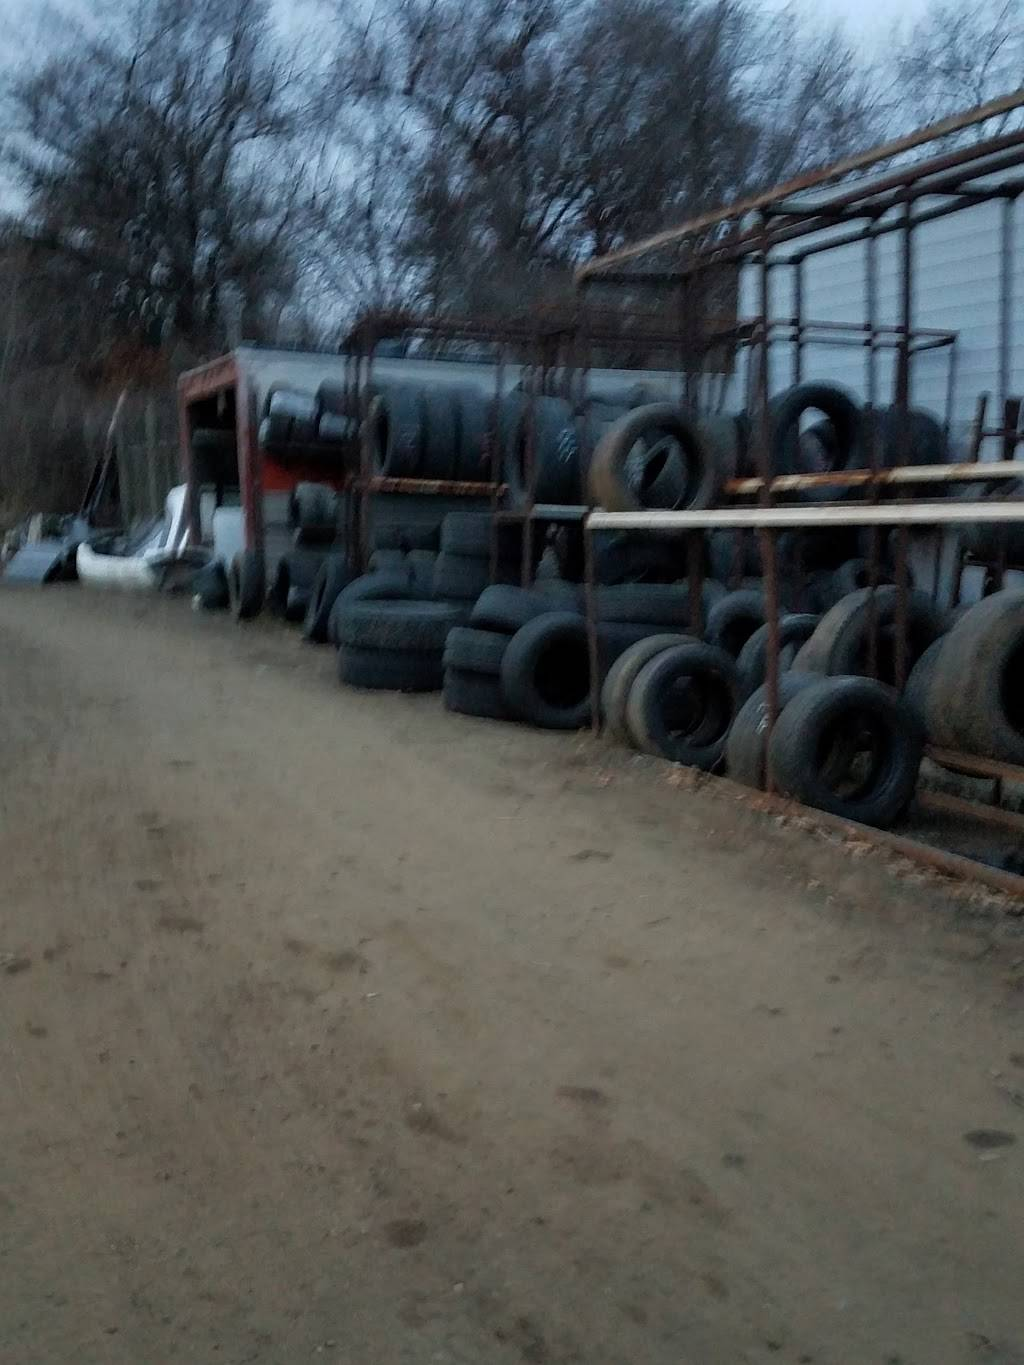 Highway 101 Auto Salvage Inc - car repair  | Photo 9 of 10 | Address: 9099 W Hwy 101 Frontage Rd, Savage, MN 55378, USA | Phone: (952) 445-7020